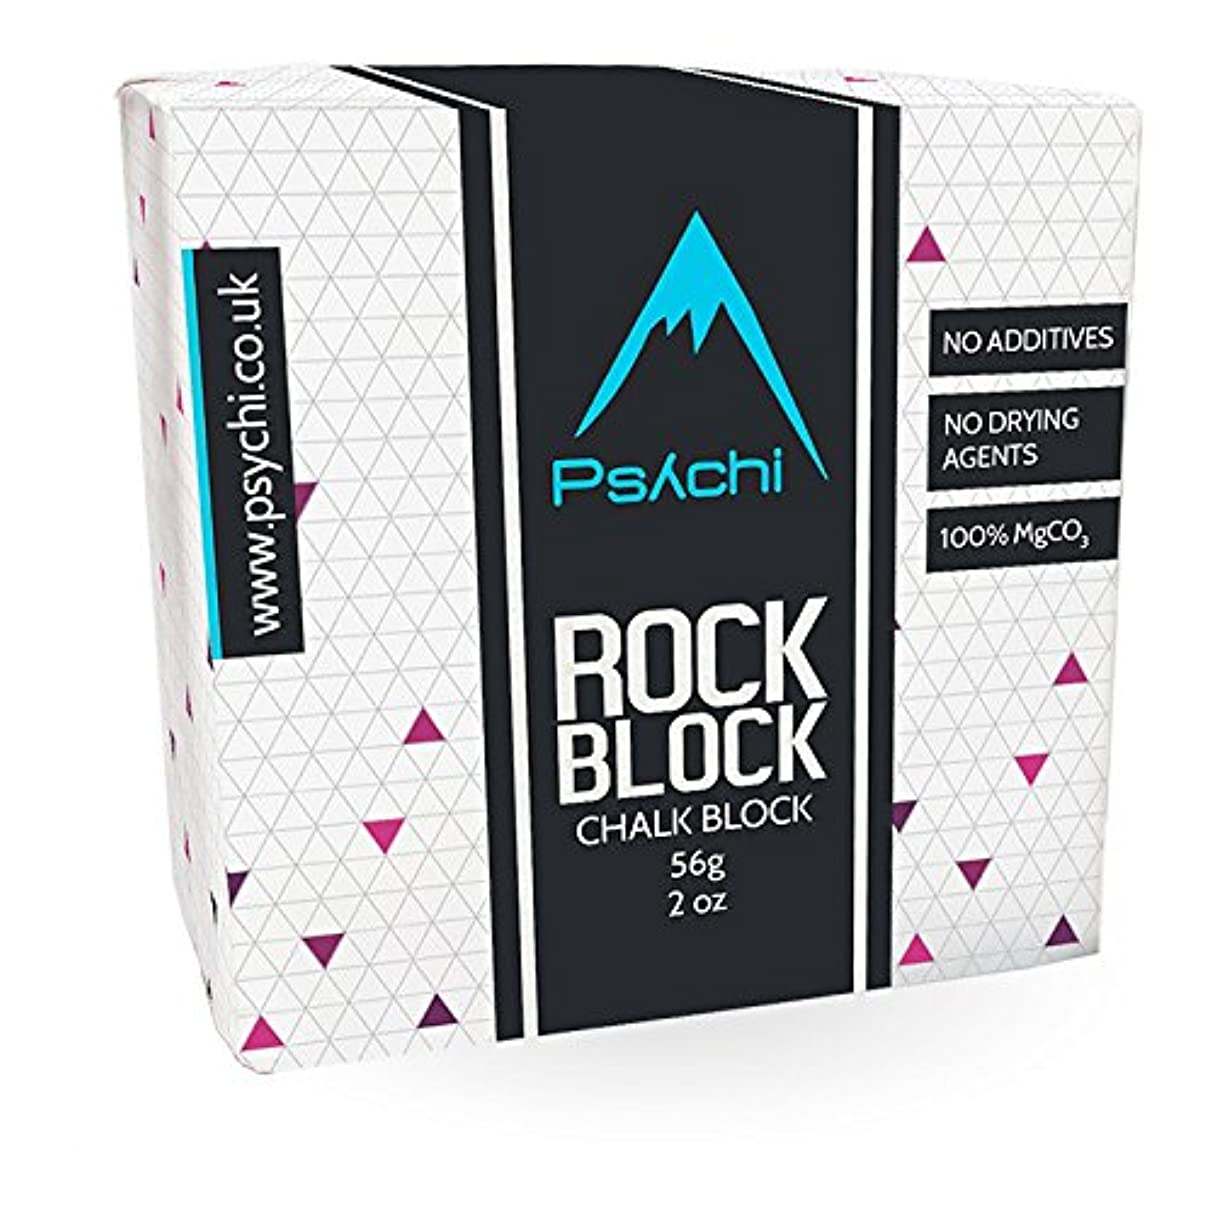 Psychi Chalk Block for Crossfit Rock Climbing Bouldering Gym Gymnastics Weightlifting Pole Dancing